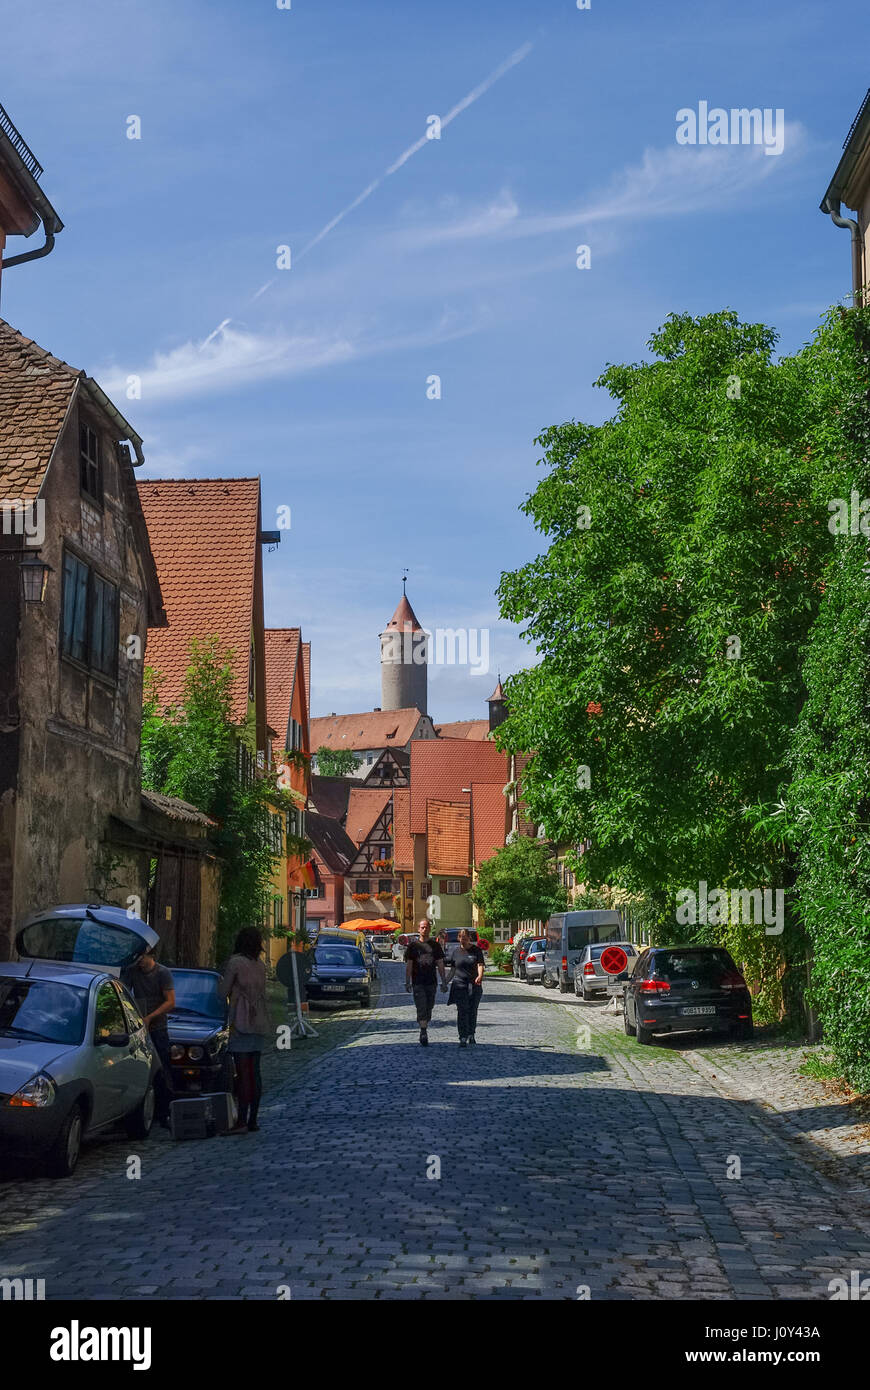 Dinkelsbuhl, Germany - August 28, 2010: Street view of Dinkelsbuhl, one of the archetypal medieval towns on the - Stock Image